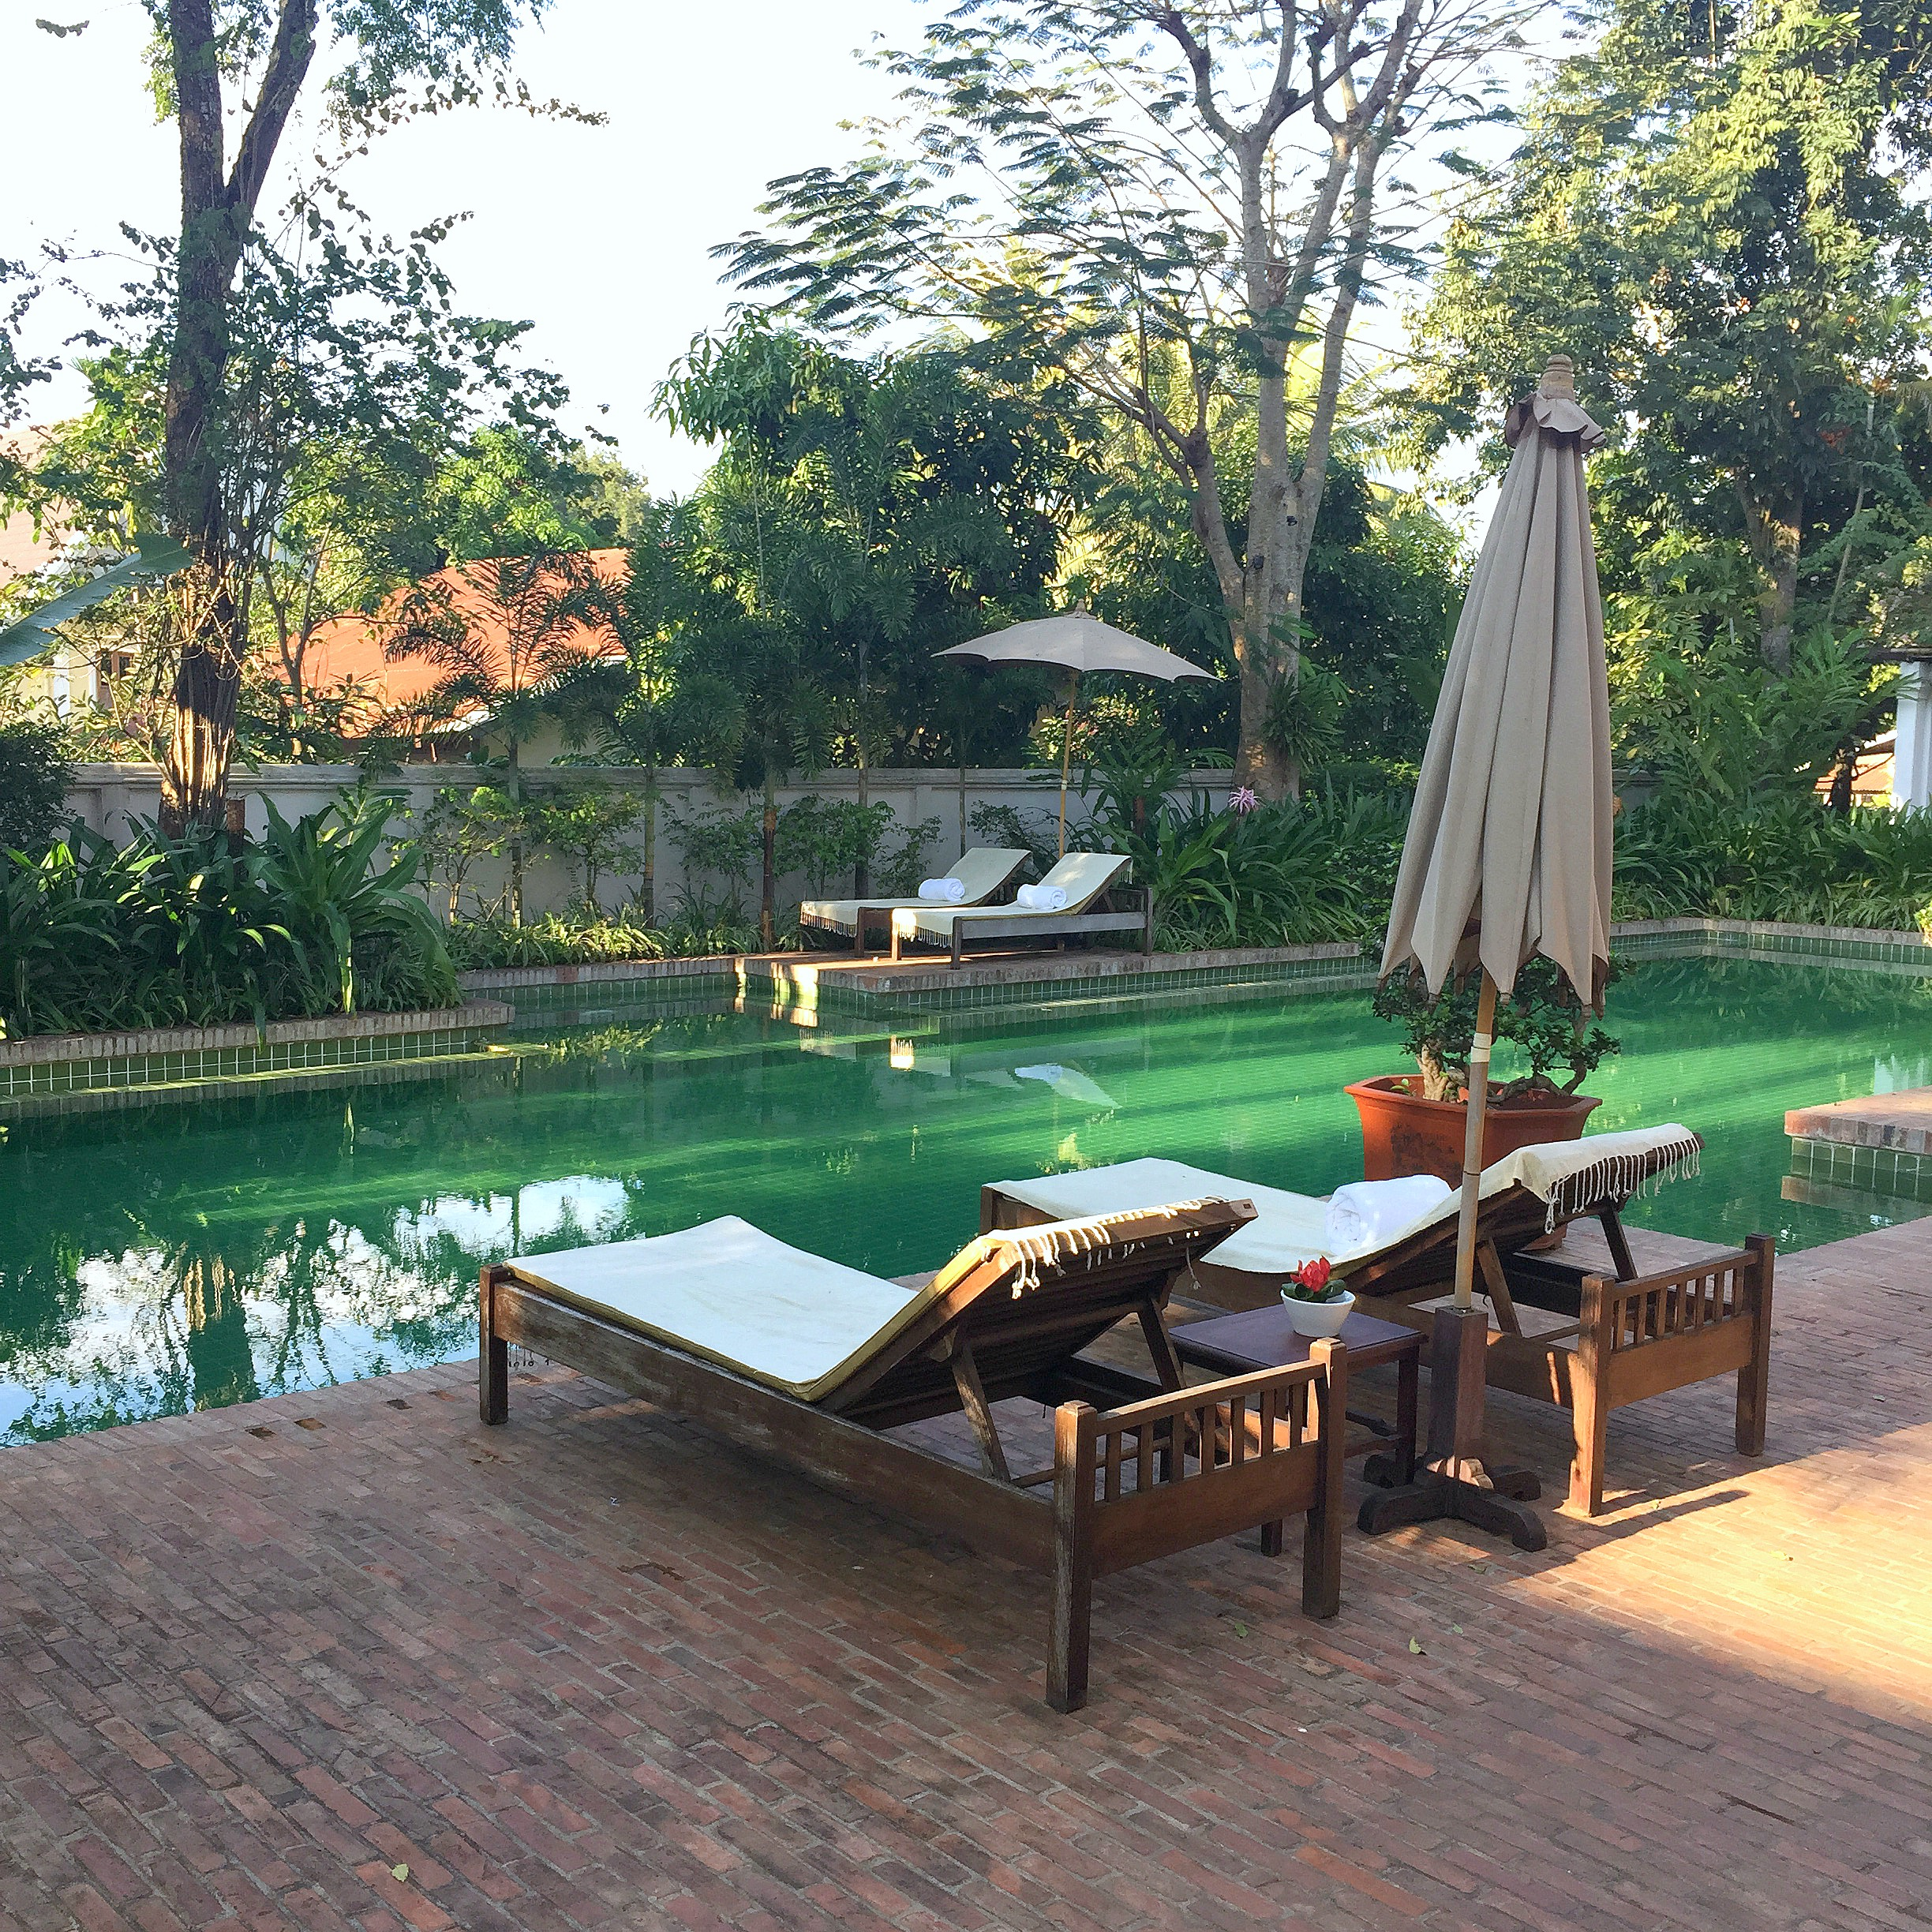 Luxury boutique hotel in luang prabang laos satri house for Luxury hotels in laos